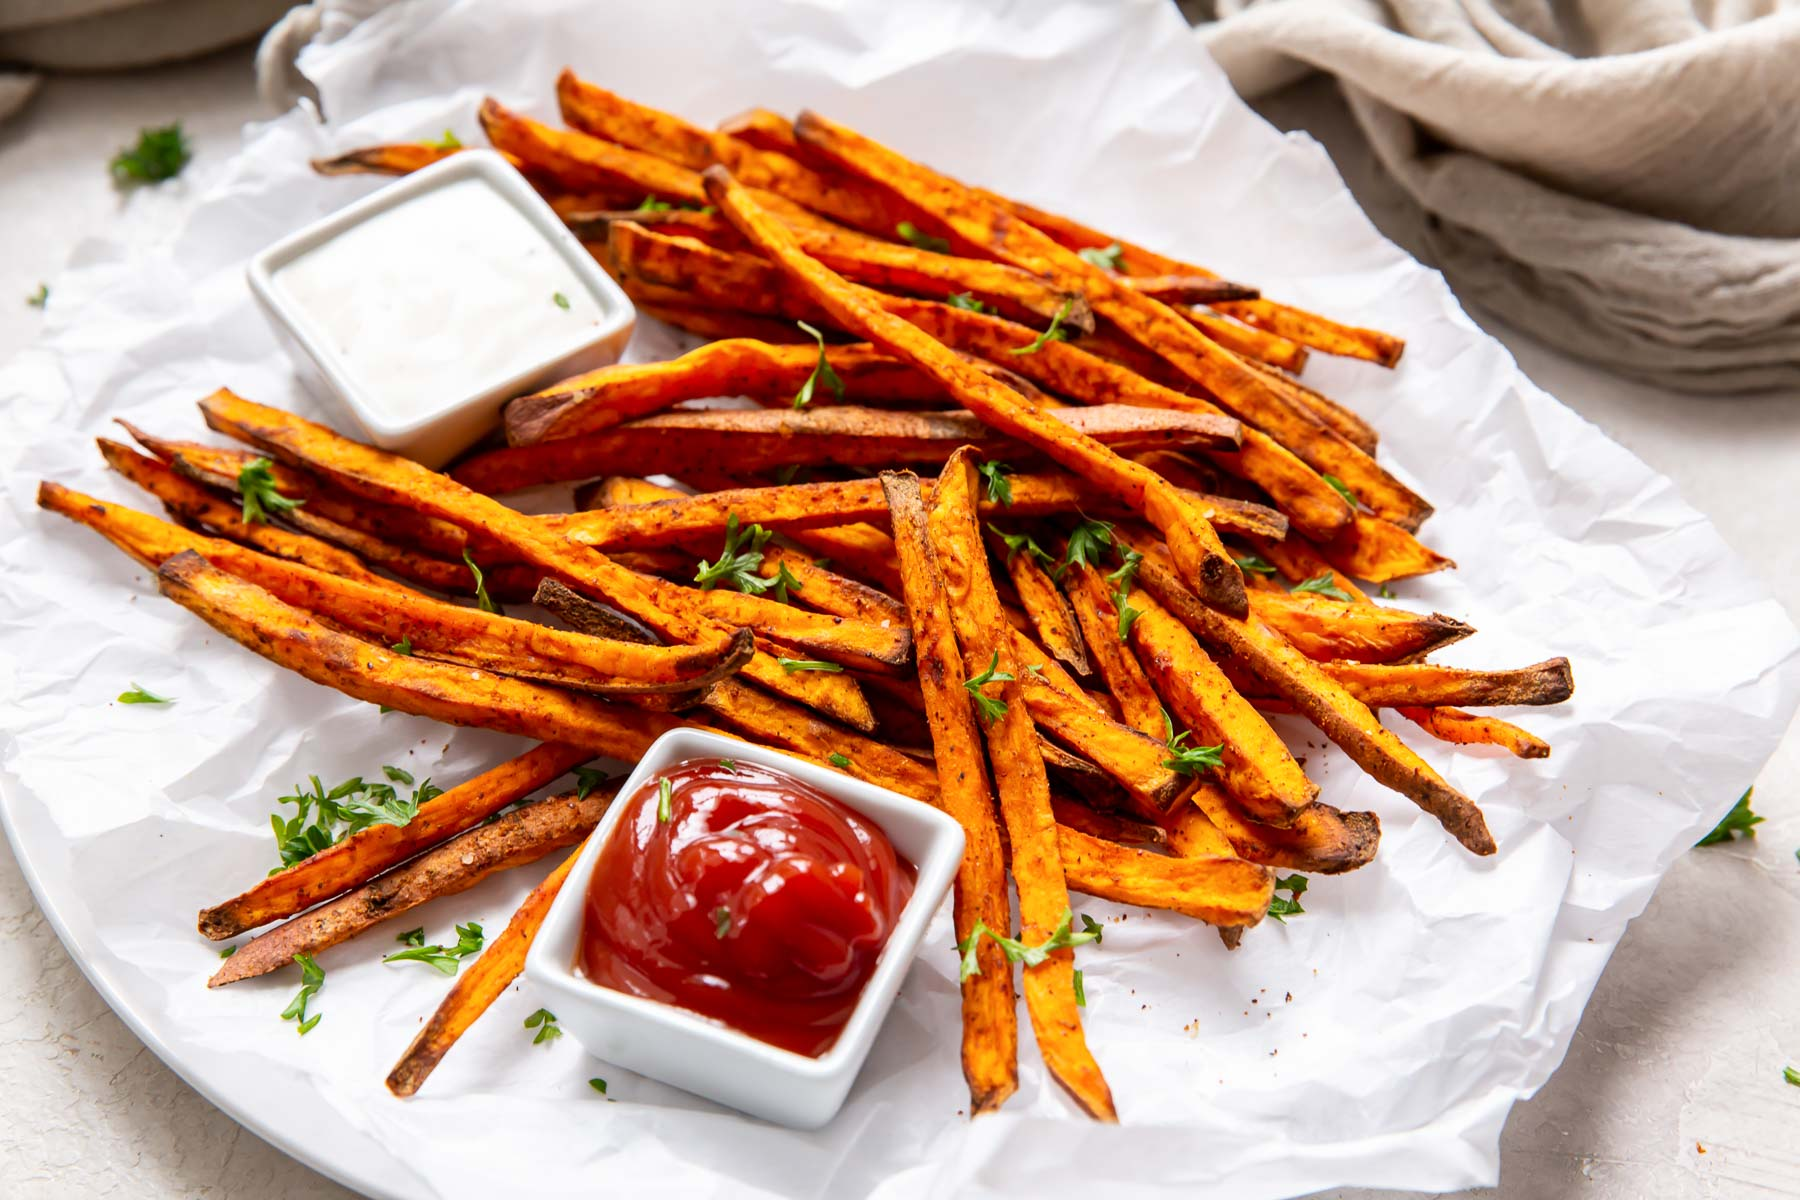 fries on a parchment paper lined plate, with a dish of ketchup and ranch